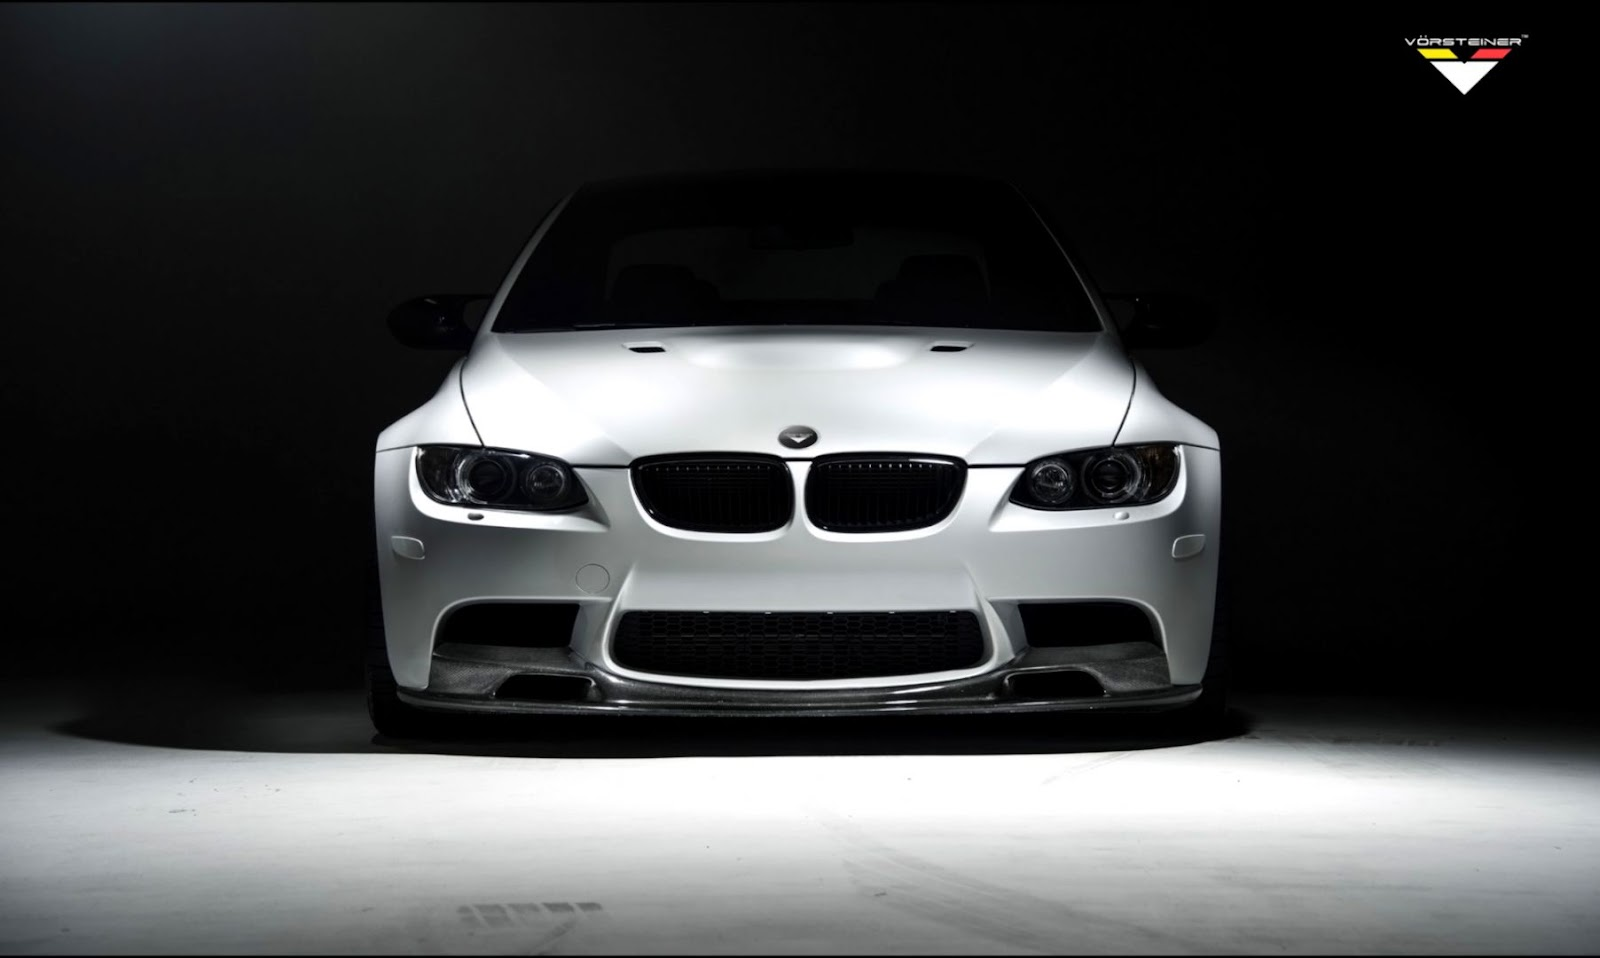 Bmw M3 Wallpaper White Car All In One Wallpapers